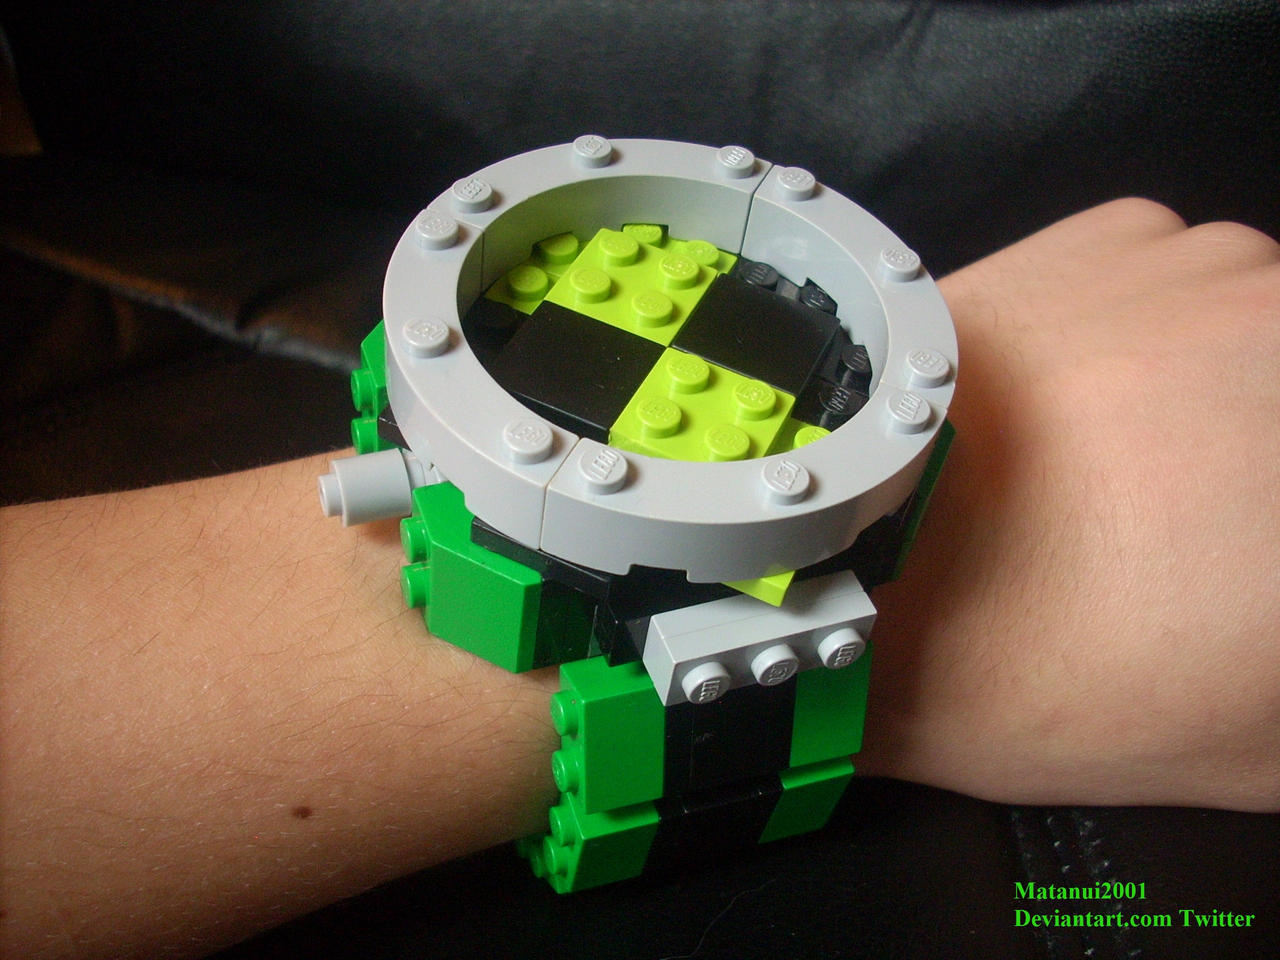 The Ultimate Lego Omnitrix by matanui2001